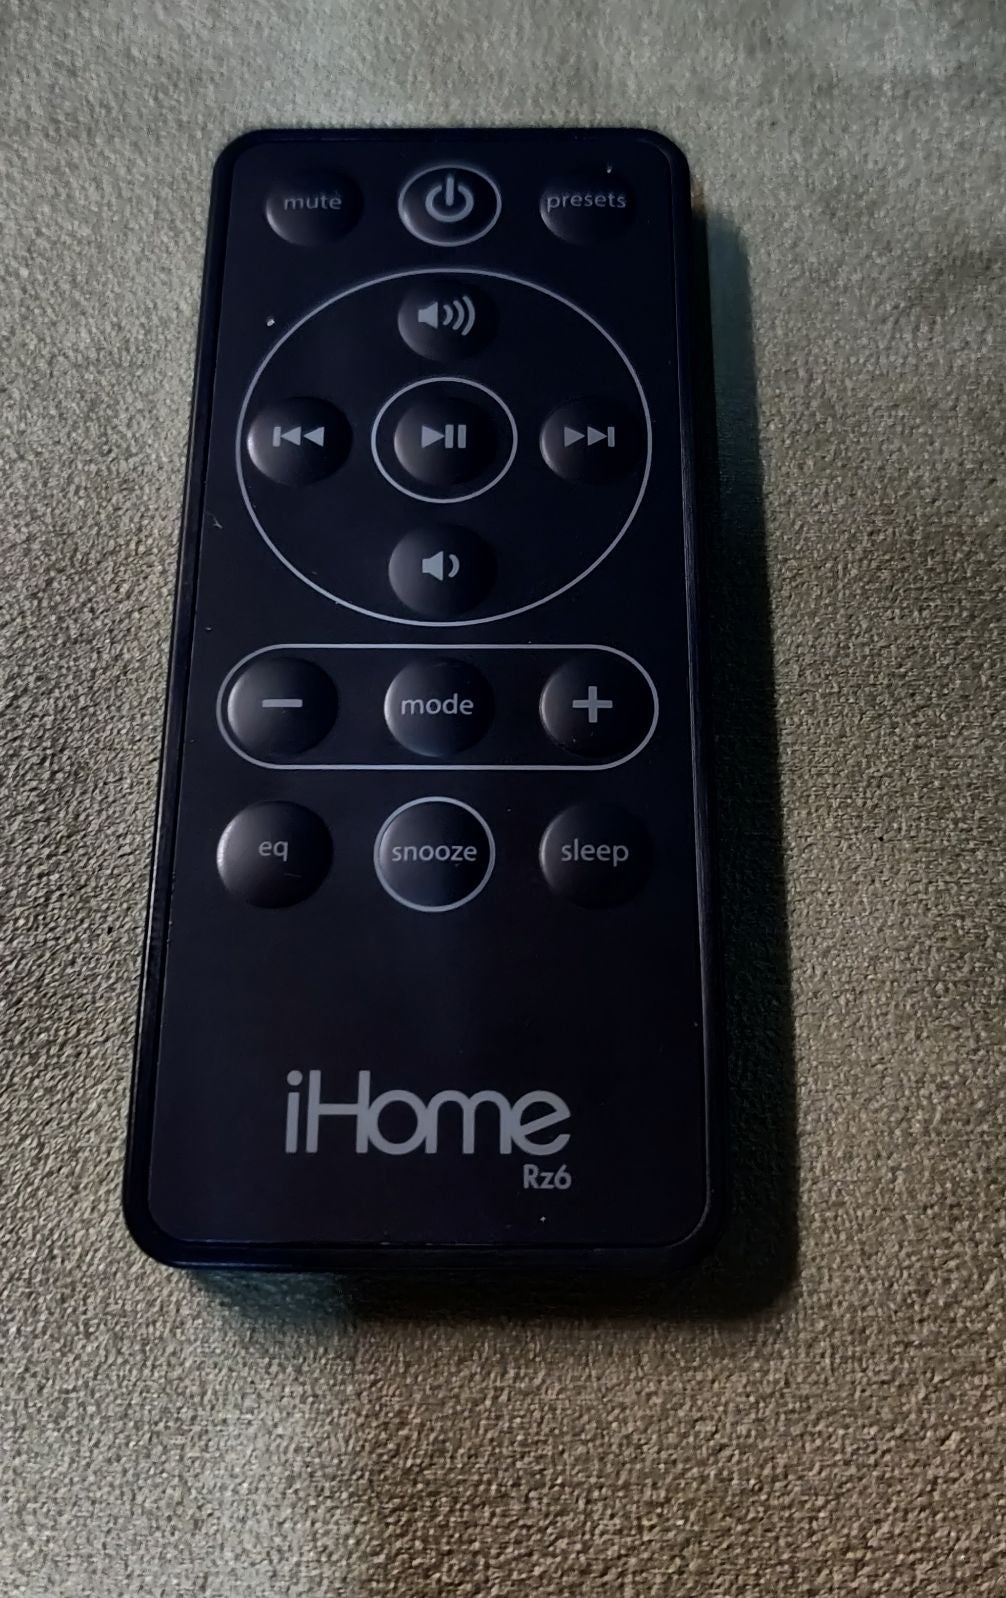 Ihome  amfm radio  iphone.ipod